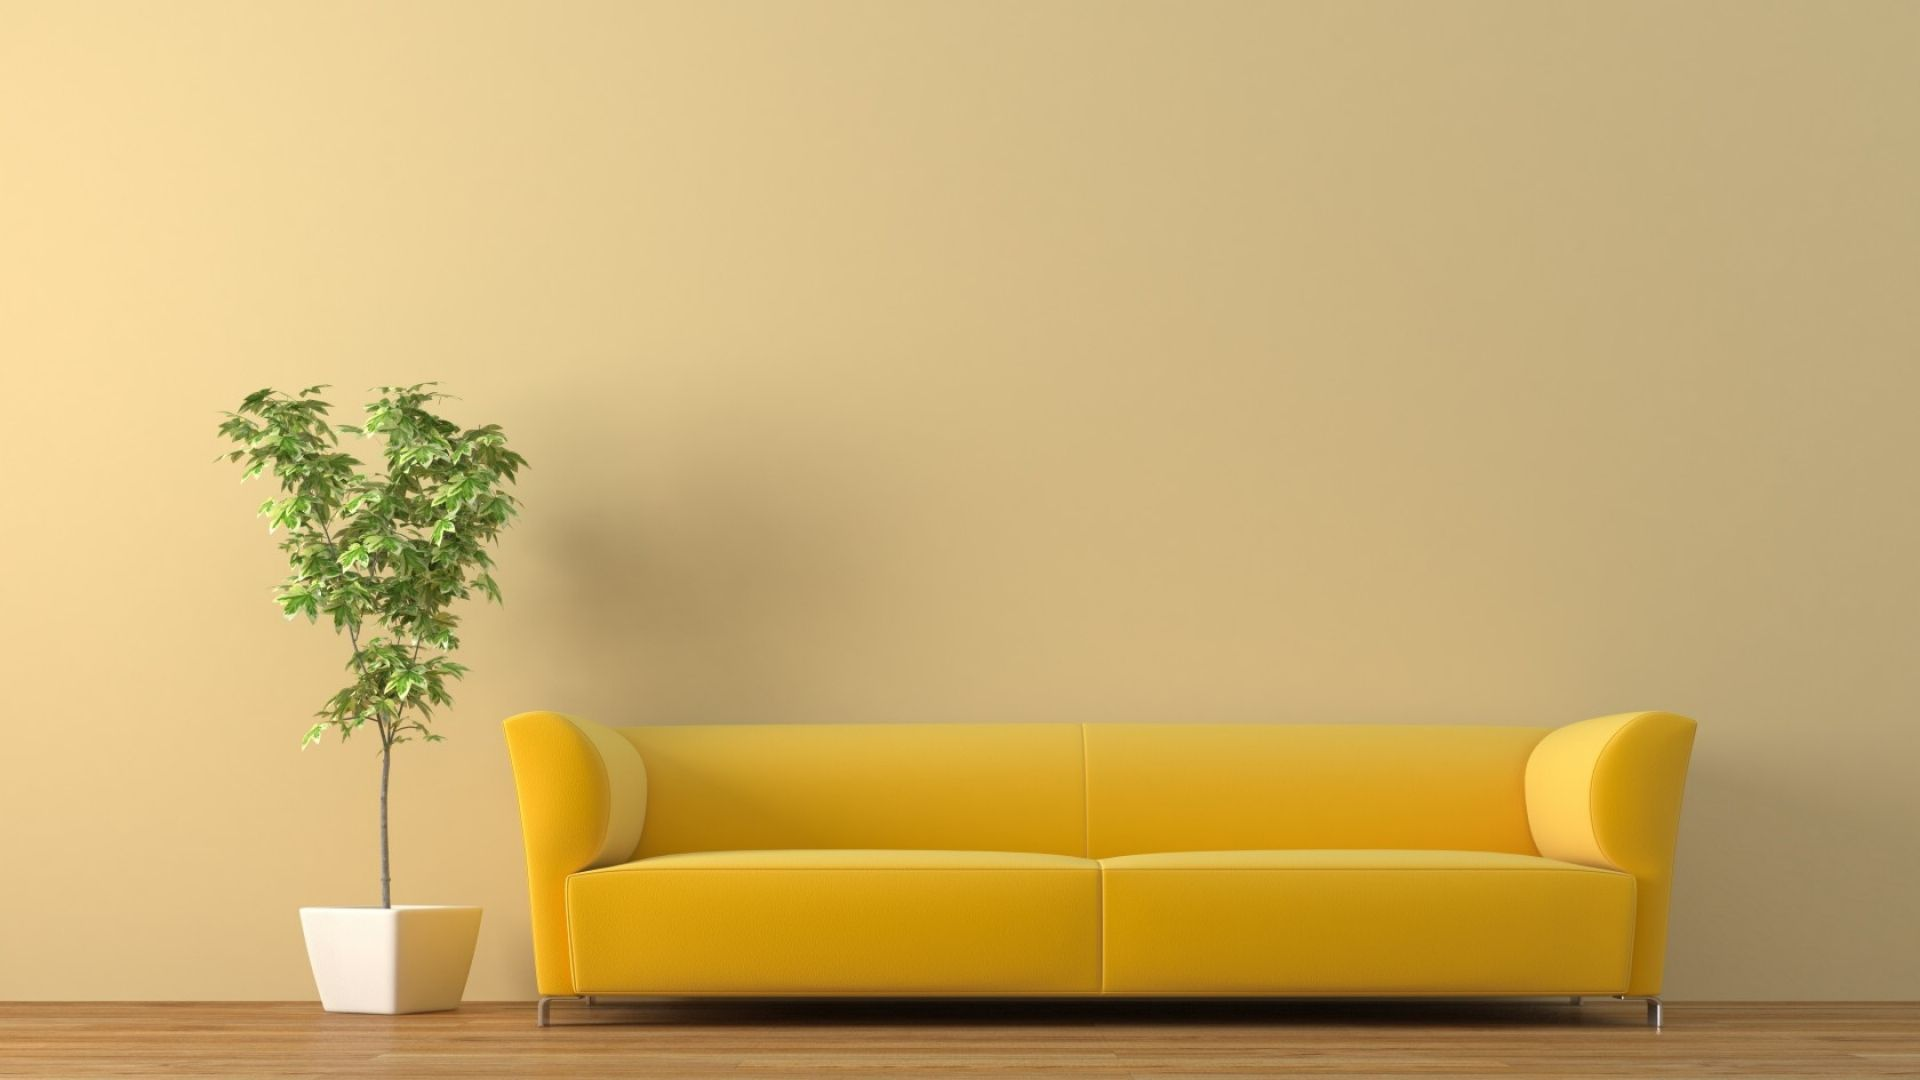 6x6 Wallpaper sofa, tub, plant  Yellow sofa design, Sofa